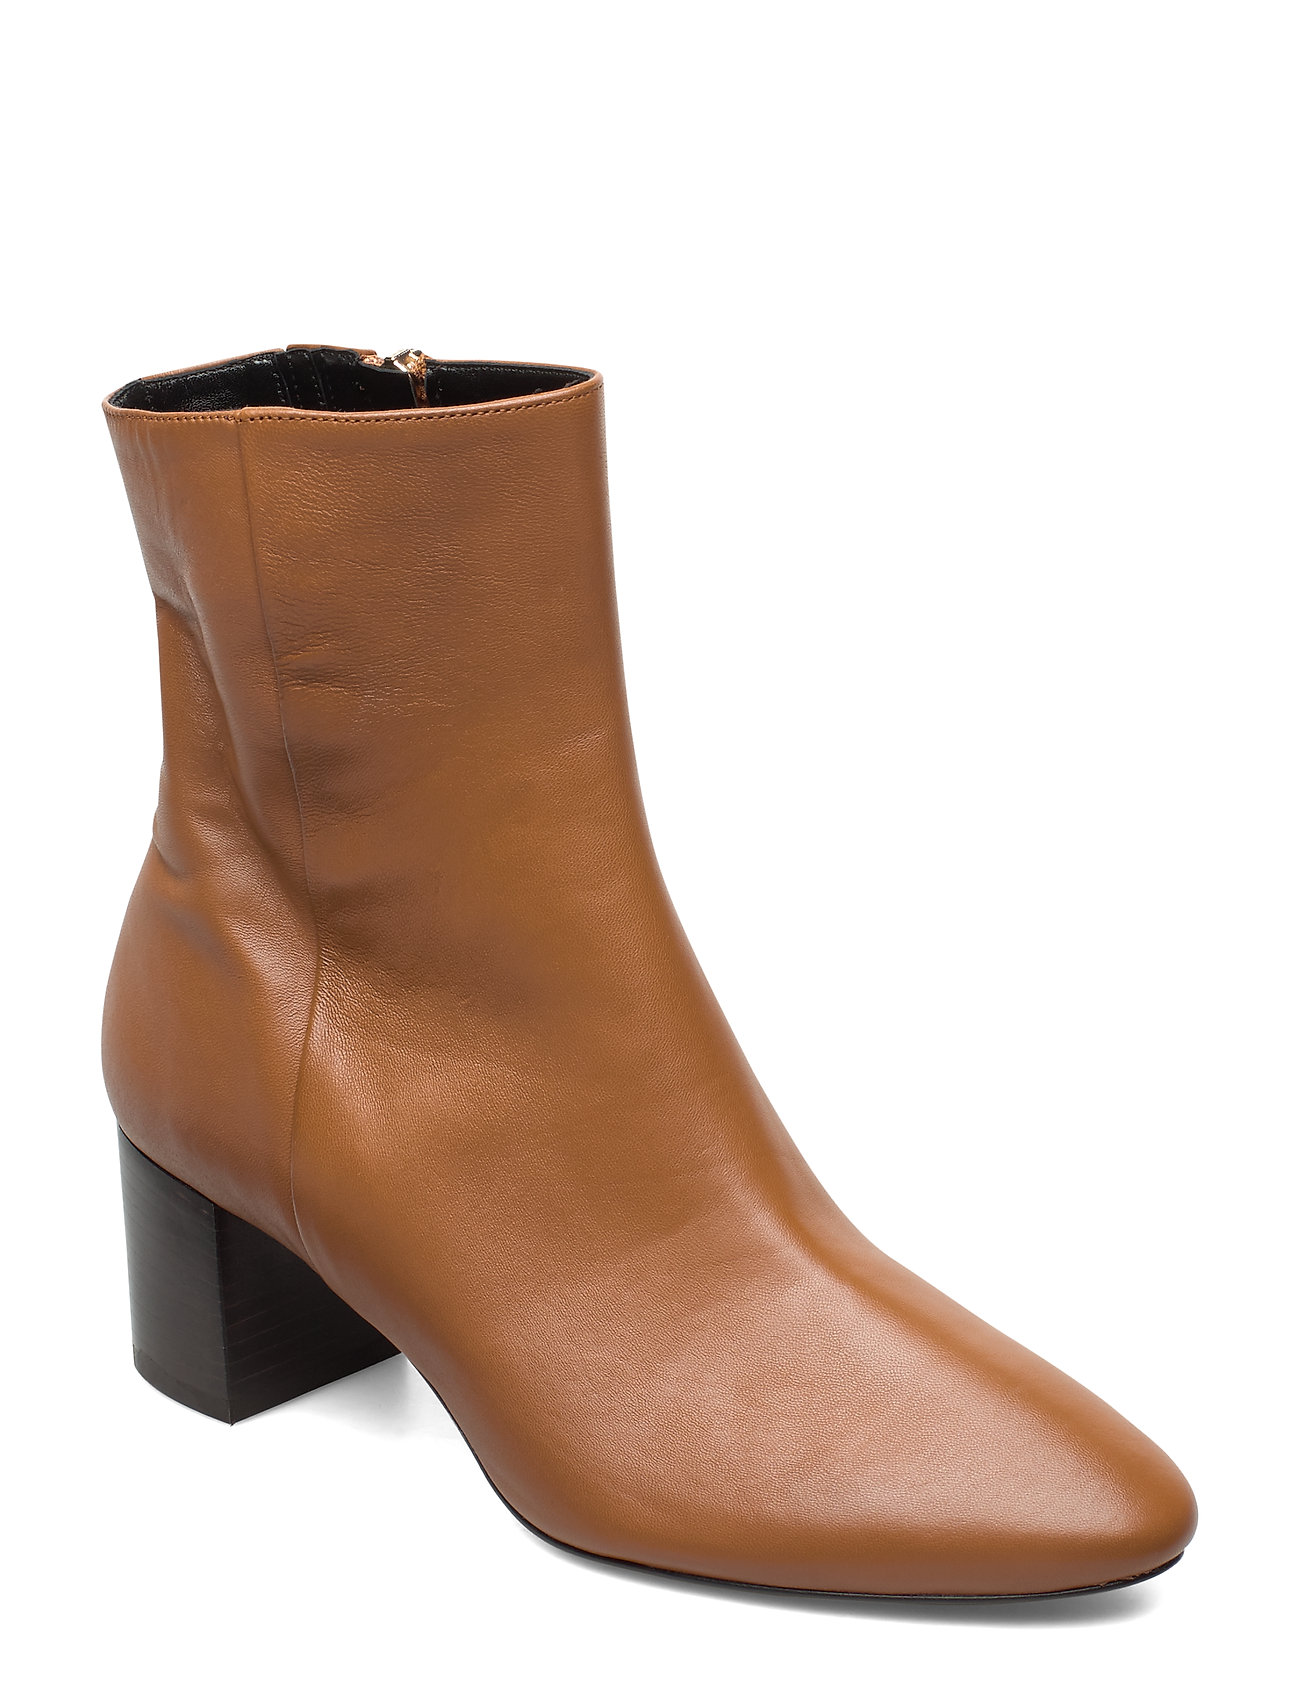 Image of Plan Low Rounded Bootie Shoes Boots Ankle Boots Ankle Boot - Heel Brun Apair (3406234683)